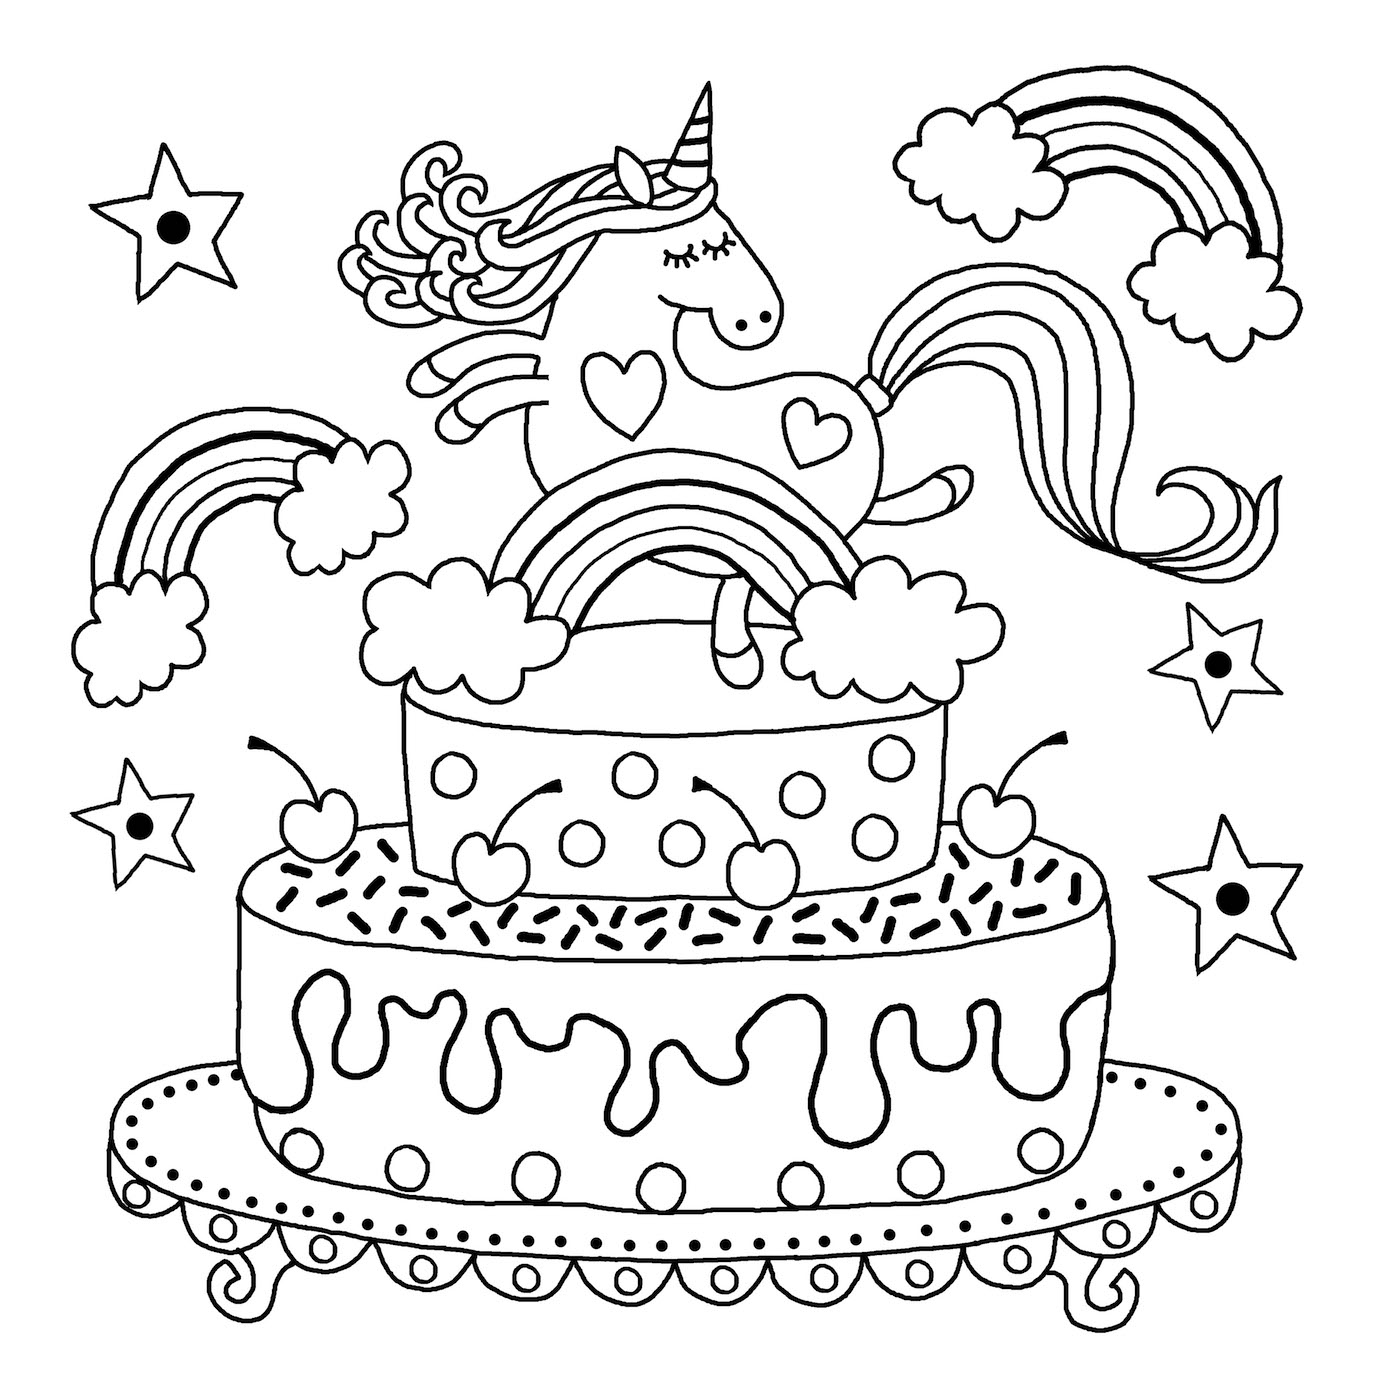 unicorn pictures printable free unicorn coloring book pages so cute kid crafts unicorn printable pictures